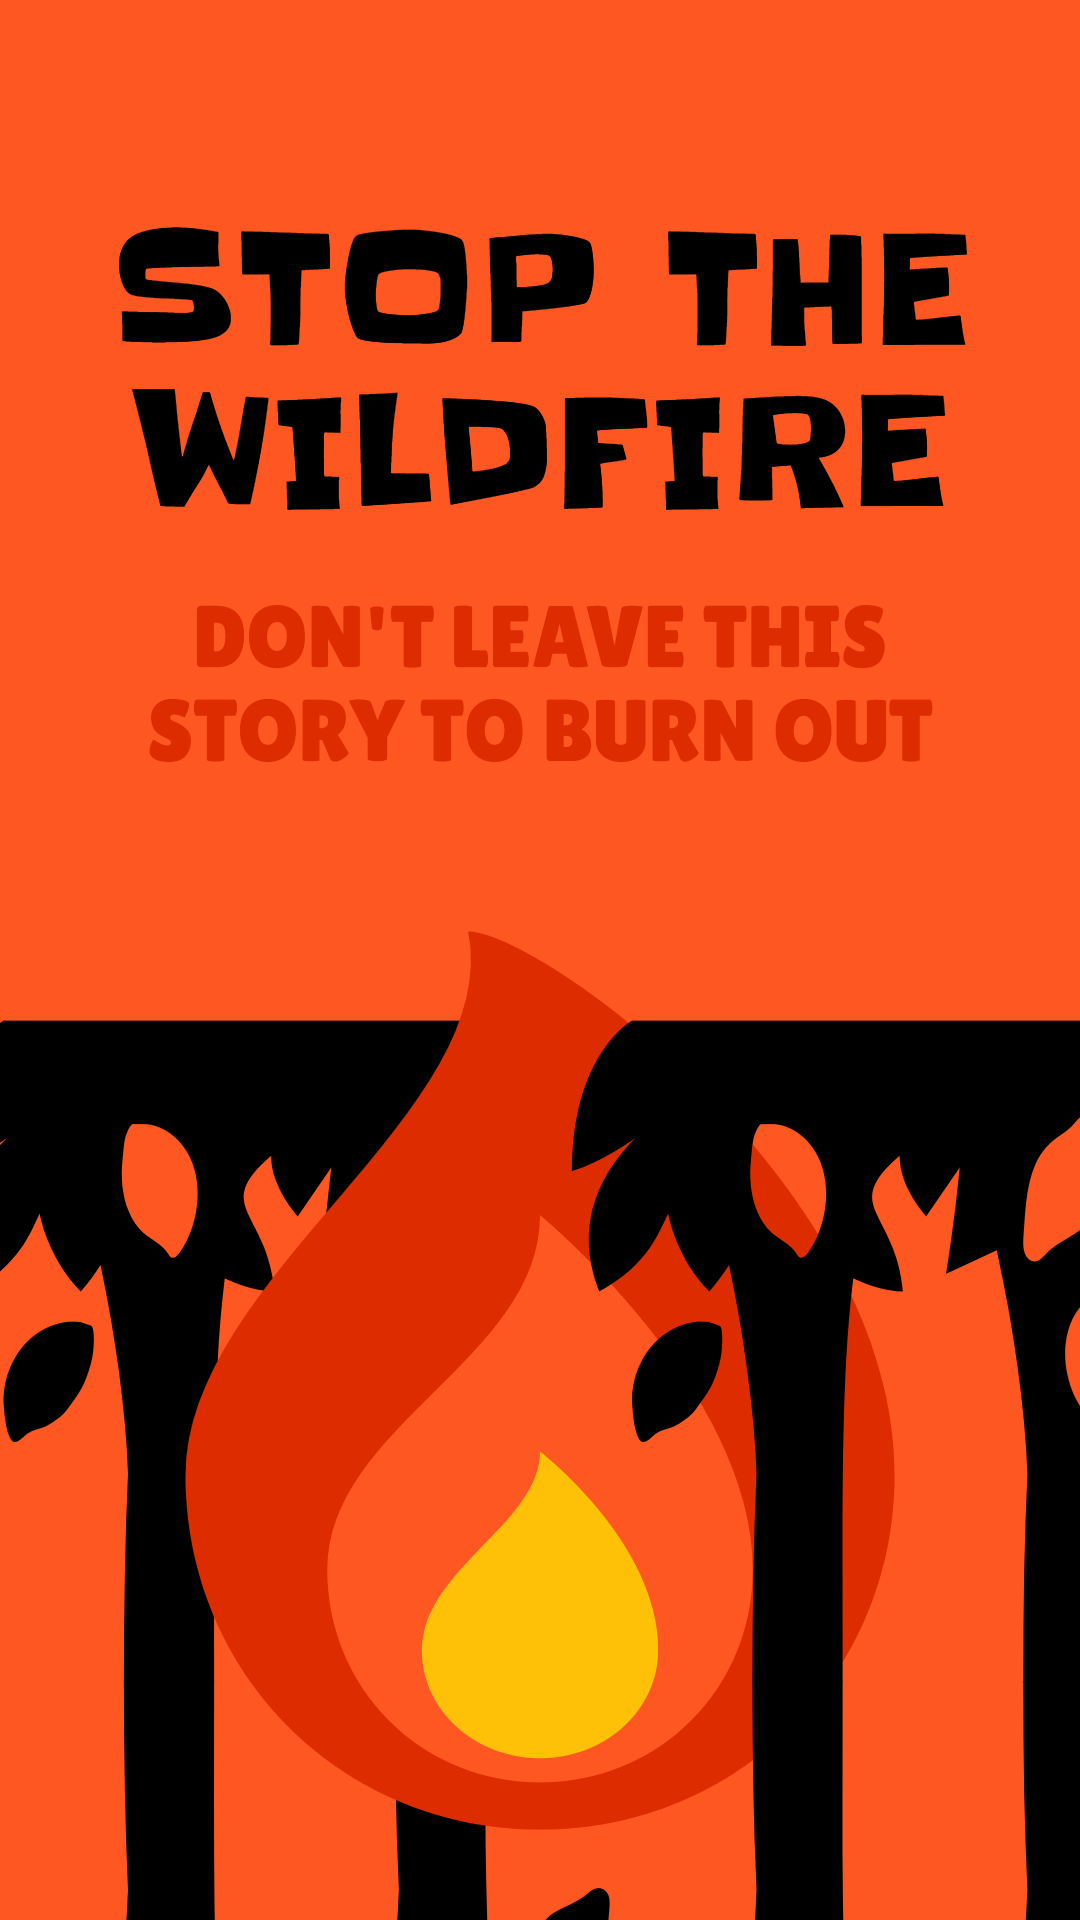 Stop the wildfire - awareness